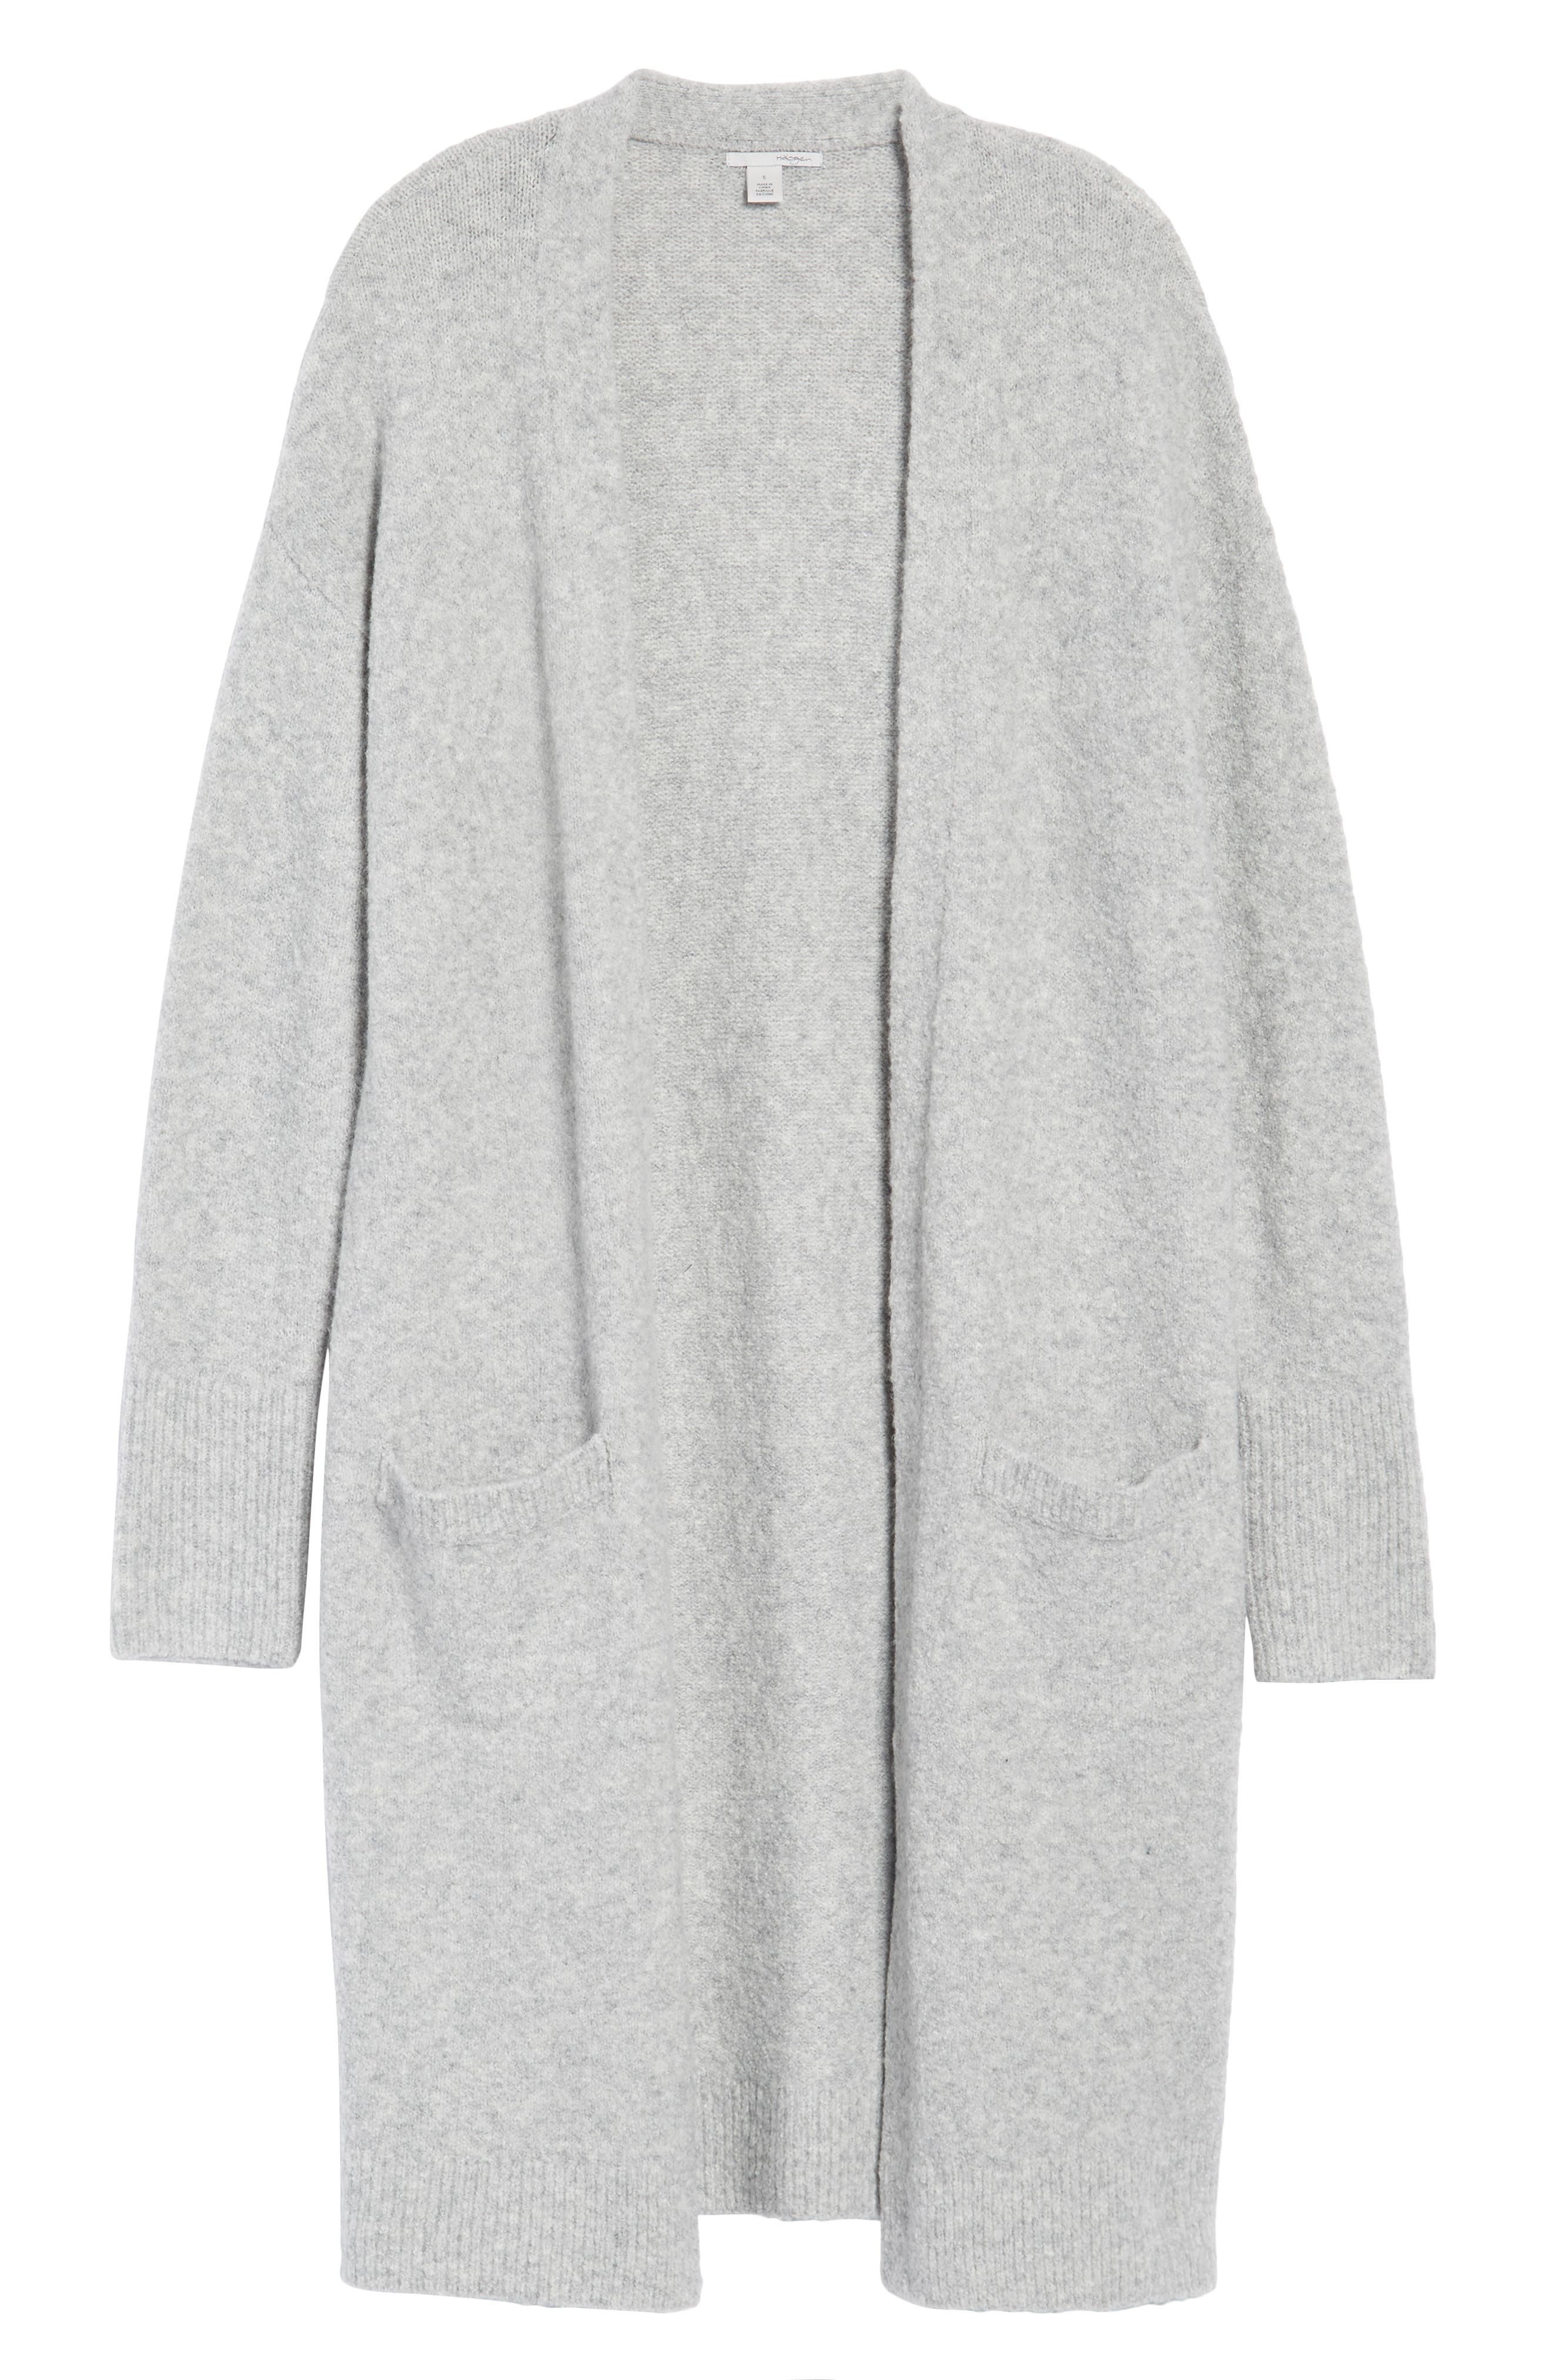 Open Front Cardigan,                             Alternate thumbnail 6, color,                             Heather Grey